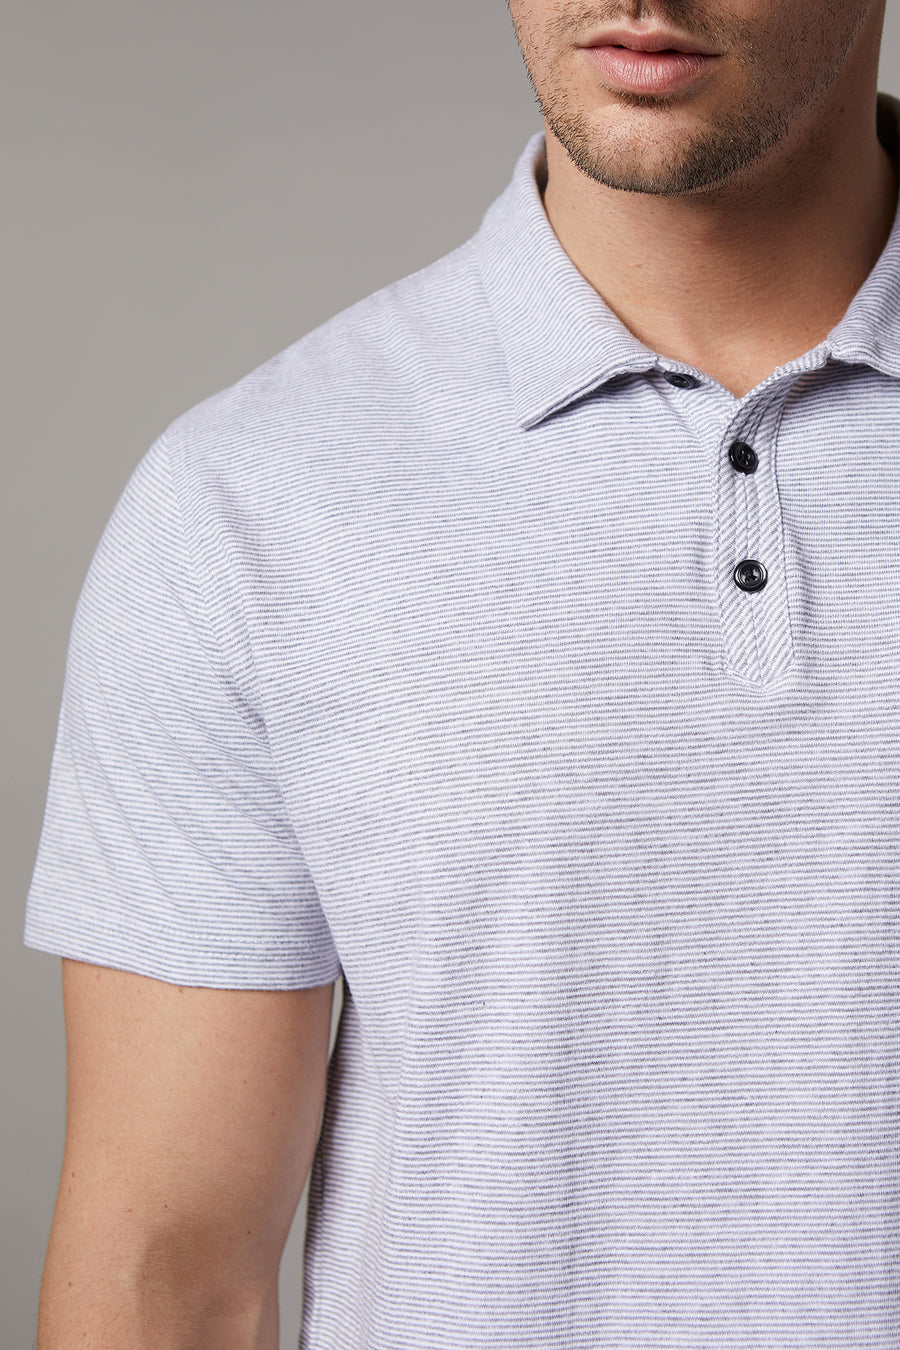 Jordan Short Sleeve Grey Polo